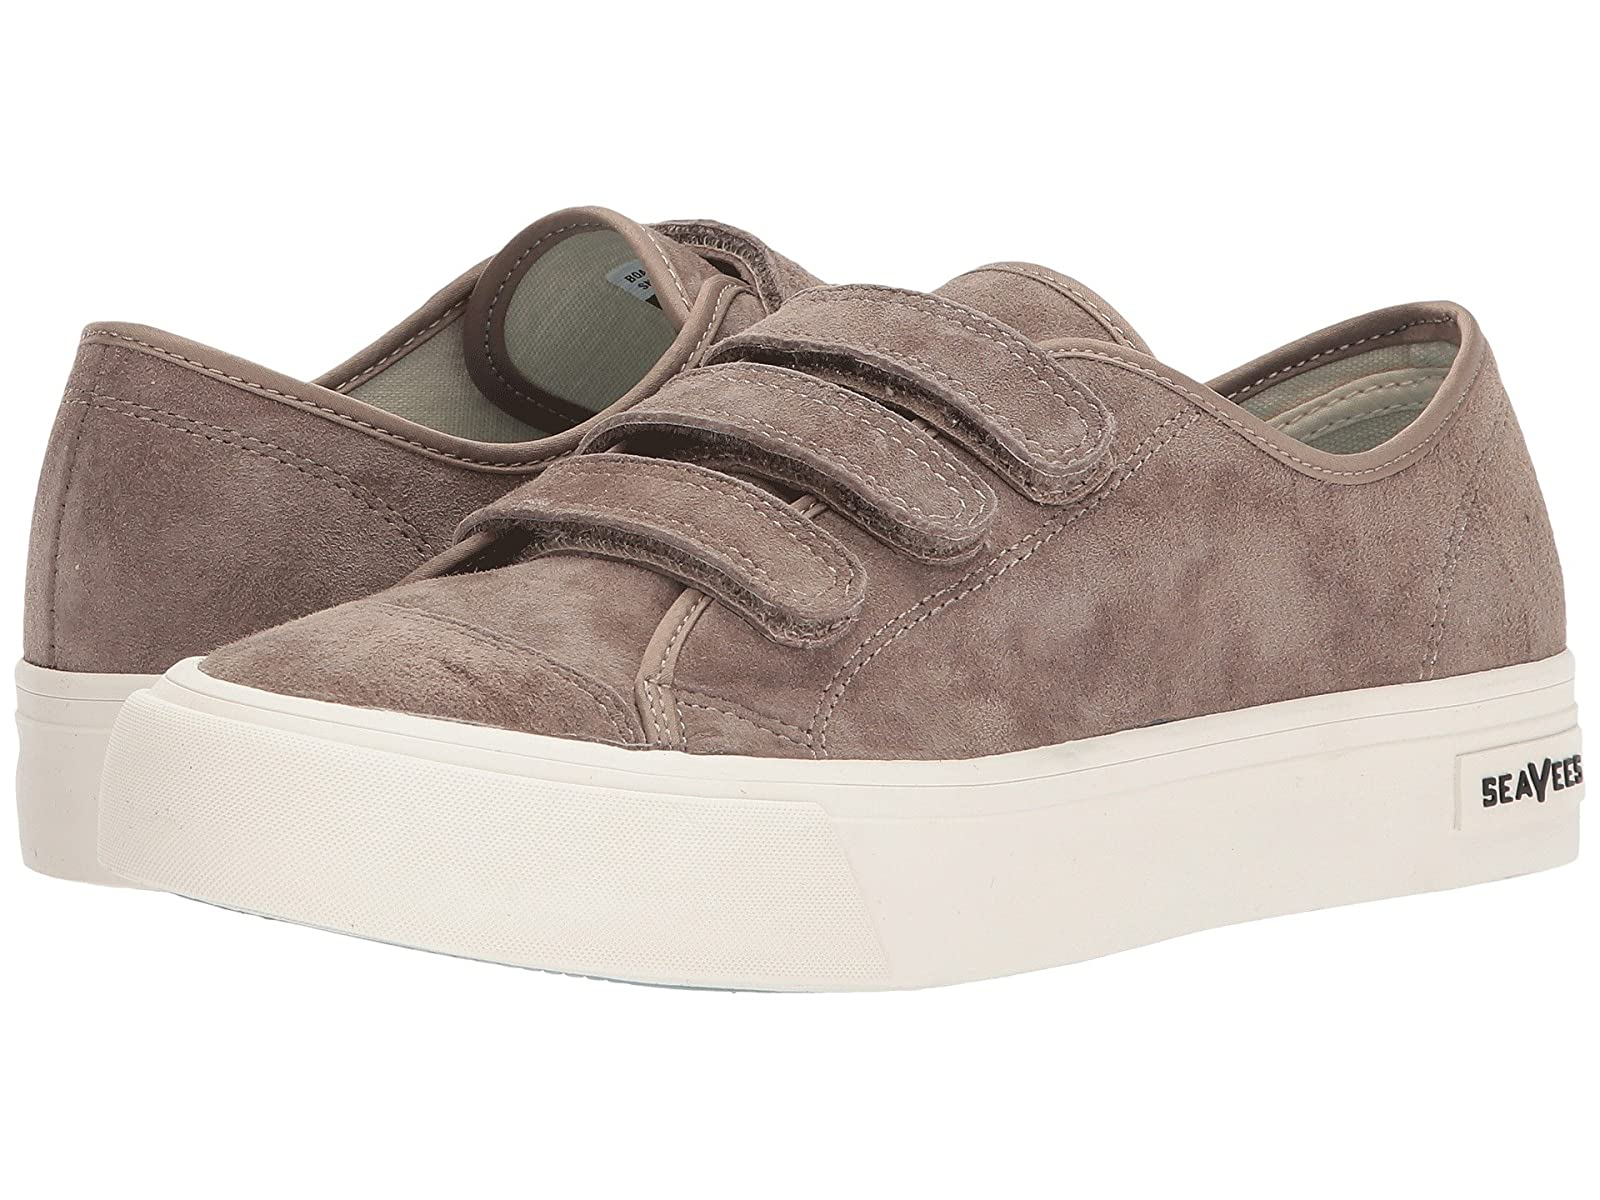 SeaVees Boardwalk SneakerCheap and distinctive eye-catching shoes